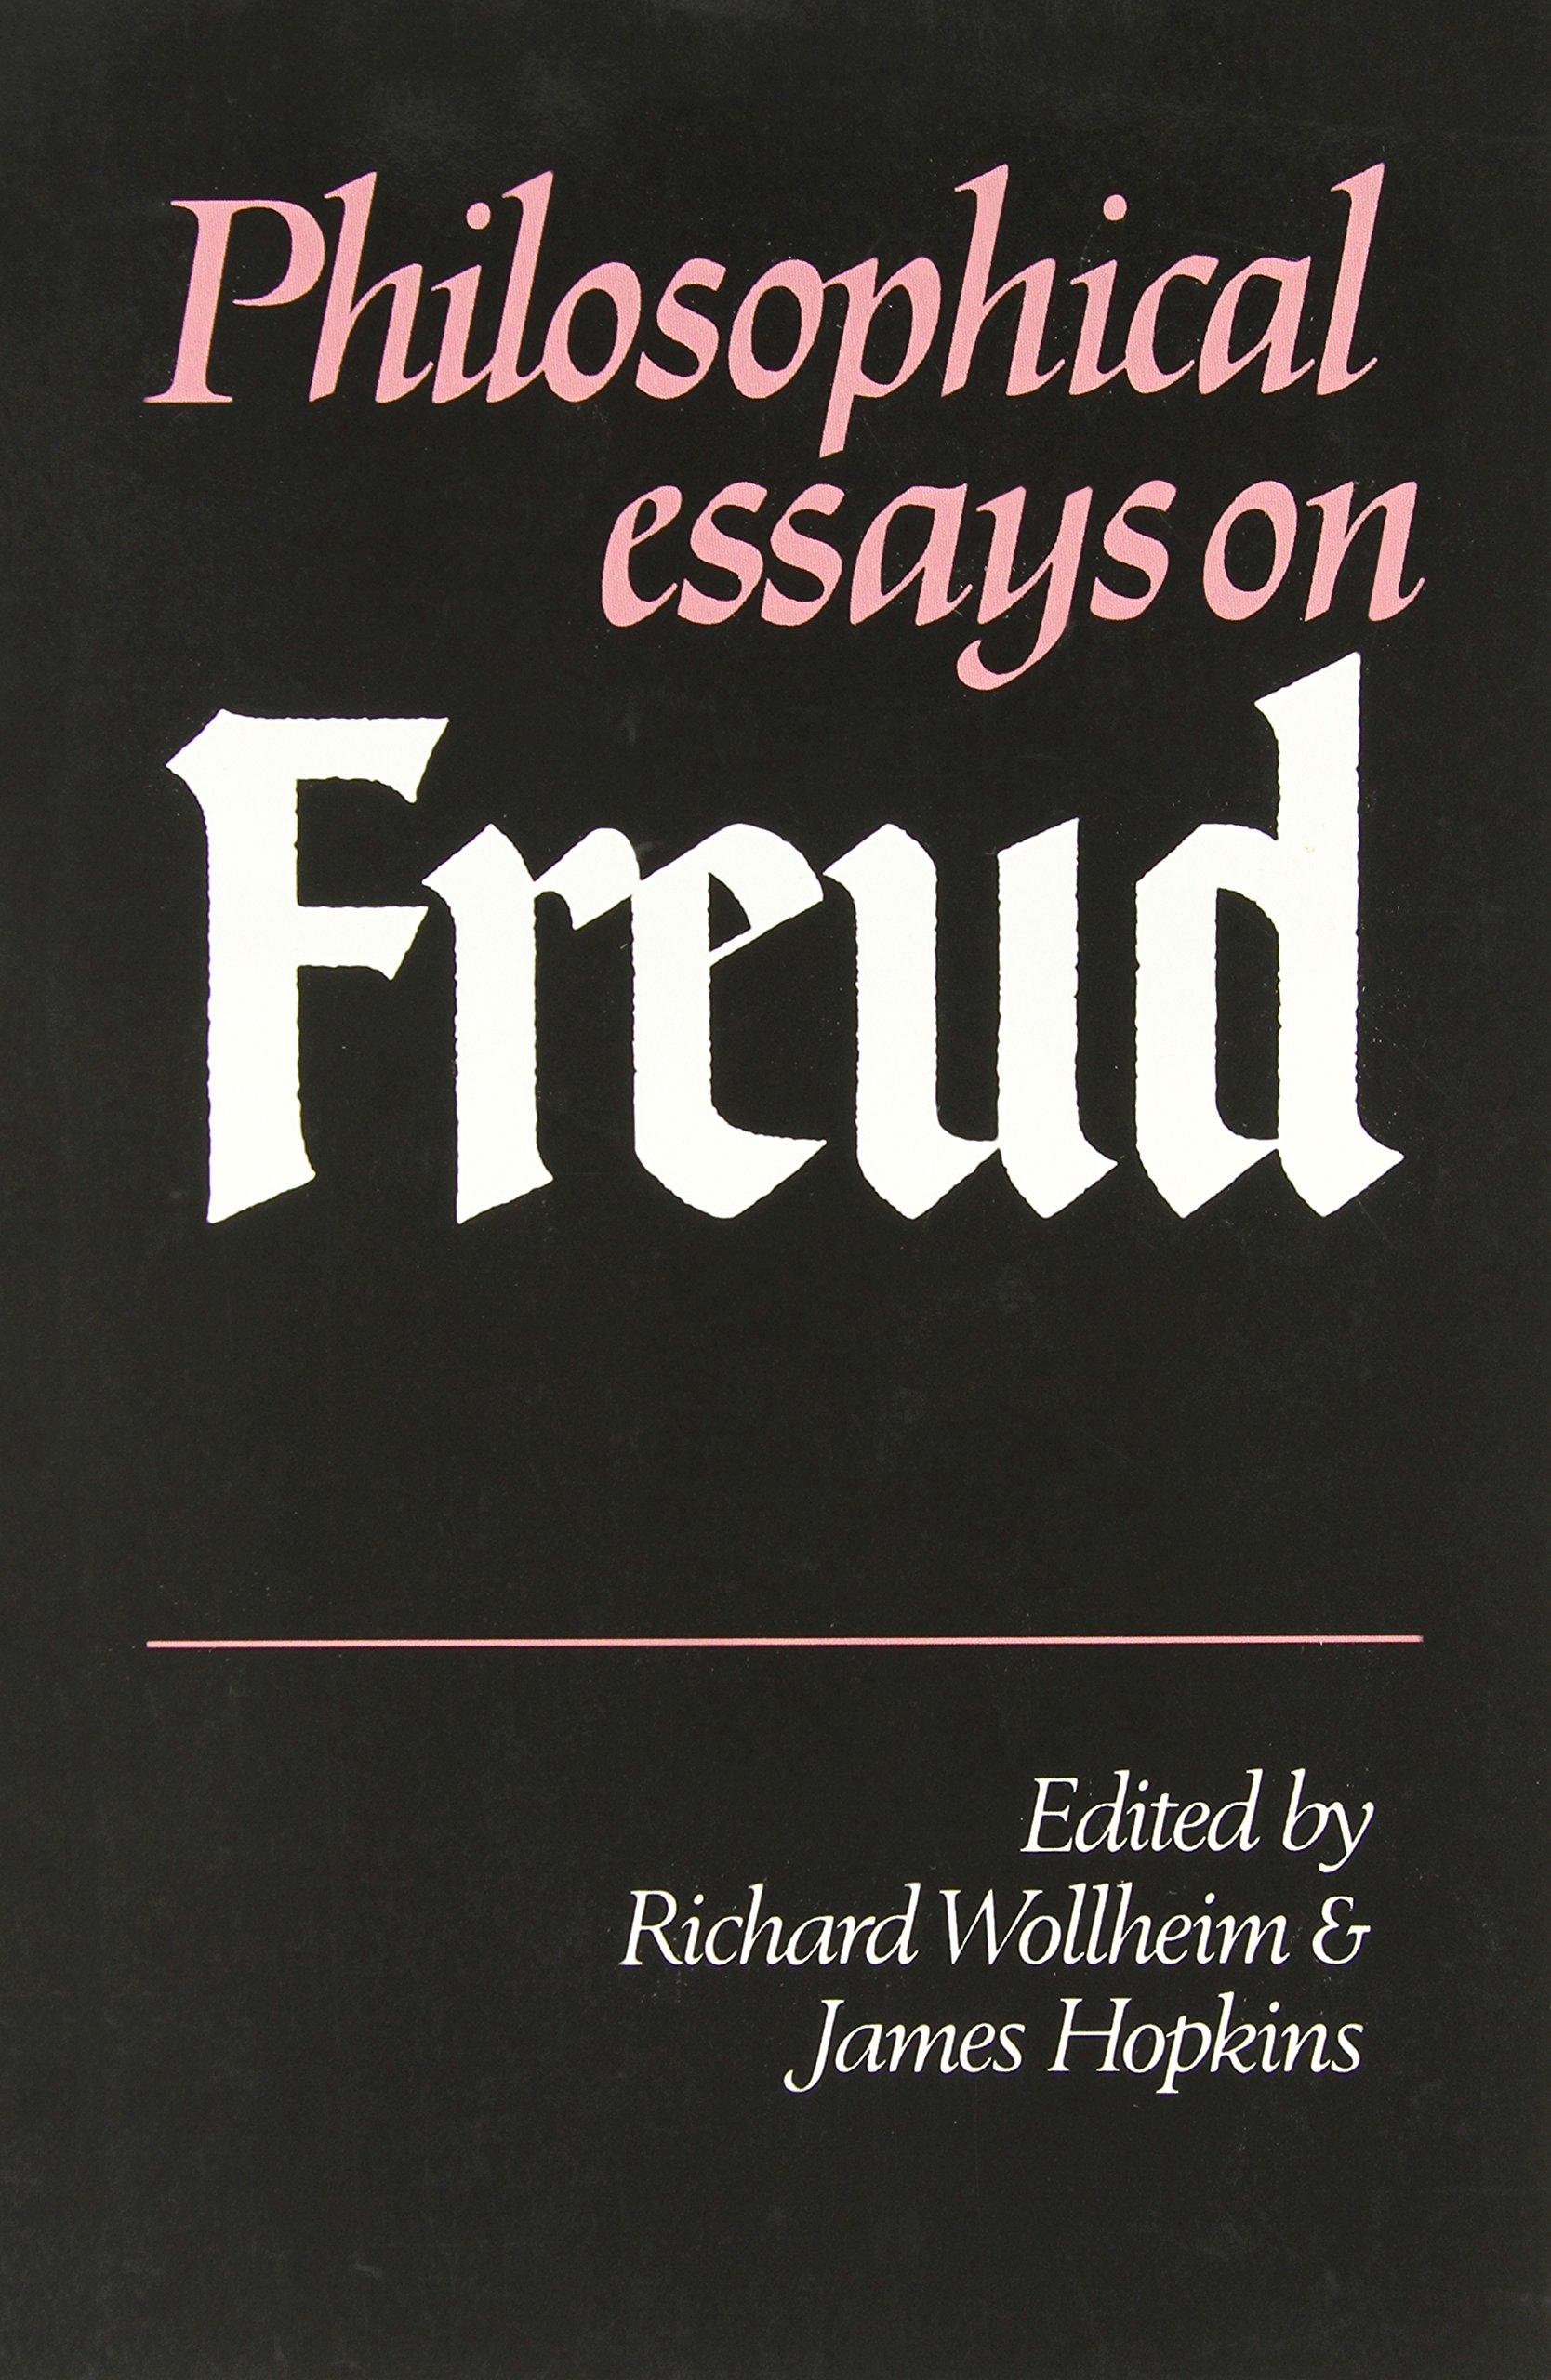 philosophical essays on freud richard wollheim james hopkins philosophical essays on freud richard wollheim james hopkins 9780521284257 amazon com books